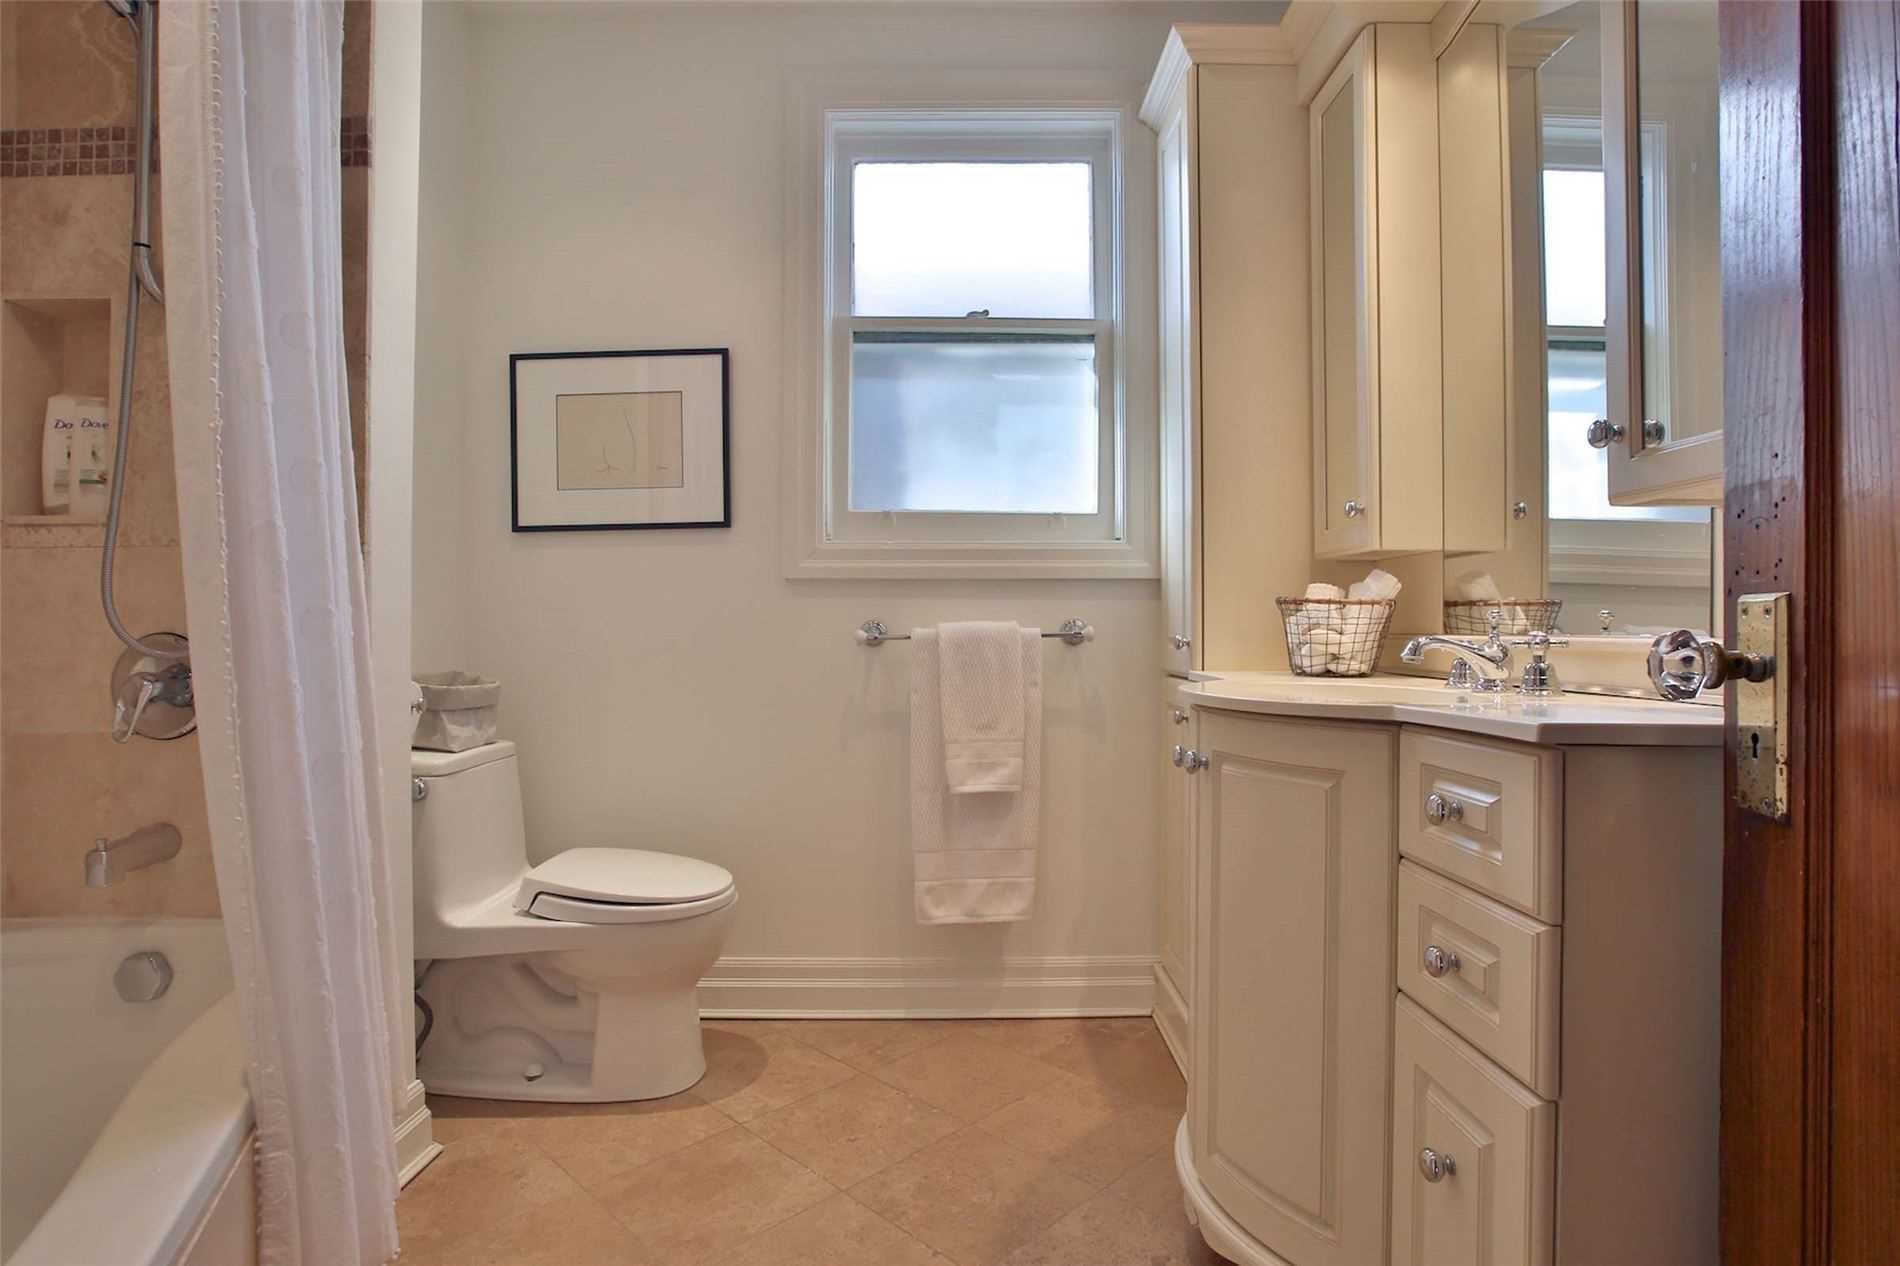 Photo 16: Photos: 181 W Glengrove Avenue in Toronto: Lawrence Park South House (2-Storey) for sale (Toronto C04)  : MLS®# C4633543